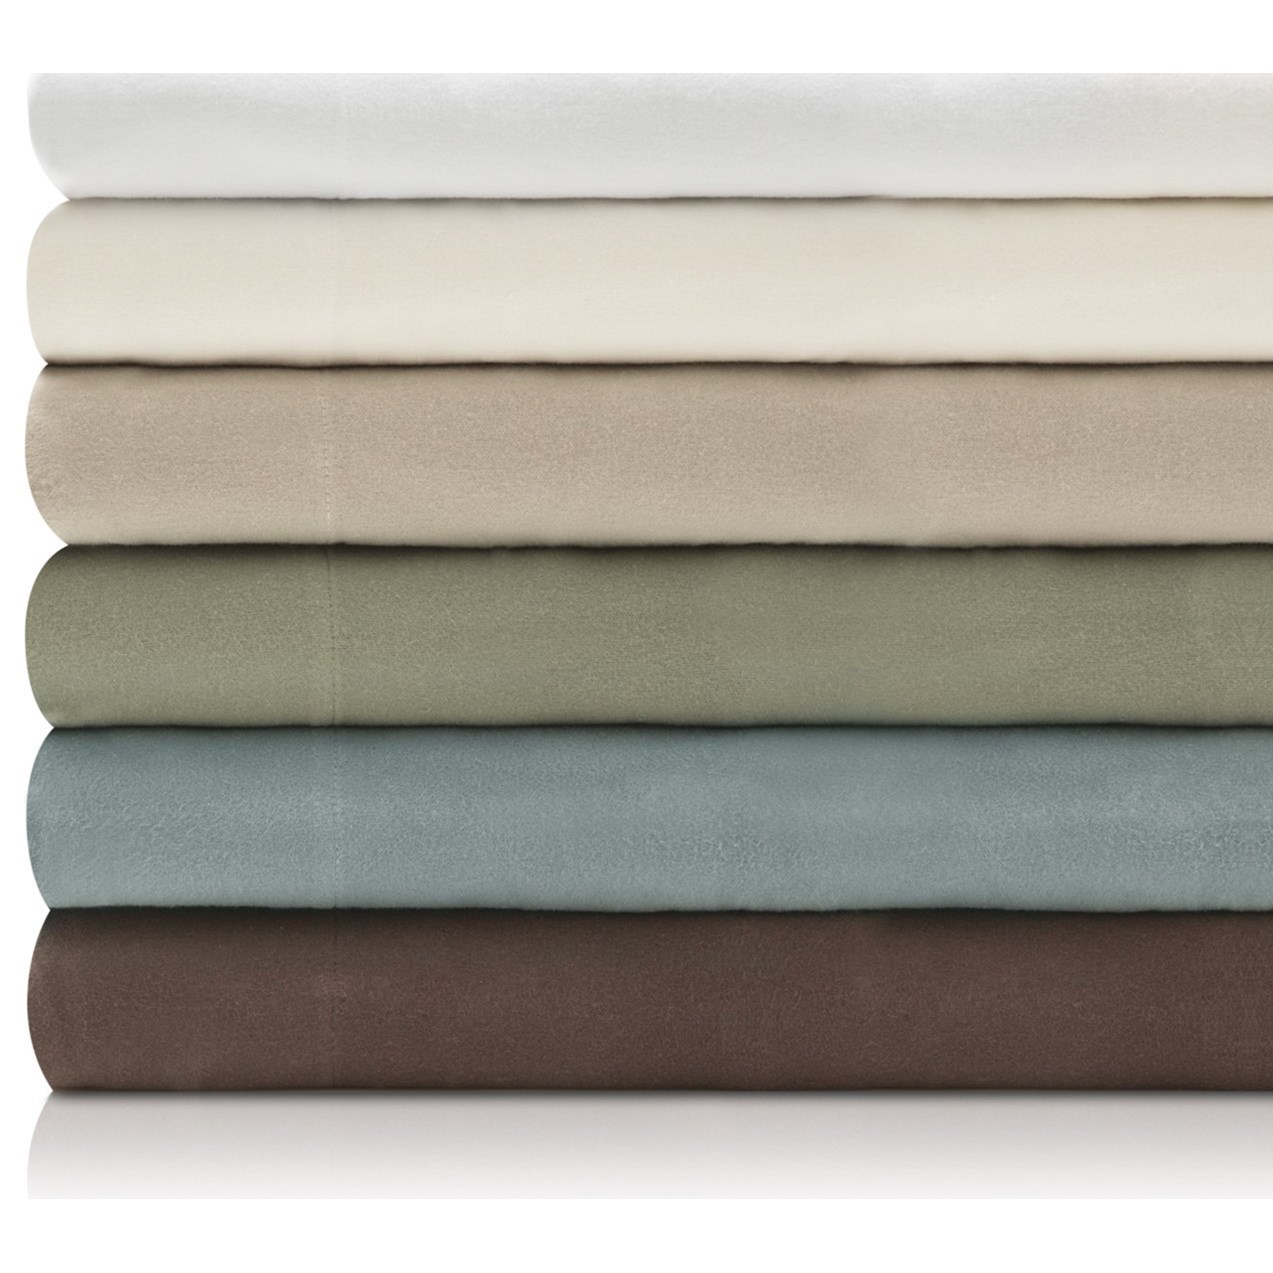 Malouf Portuguese Flannel King Woven™ Portuguese Flannel Pillowcases  - Item Number: WO19KKPNFC